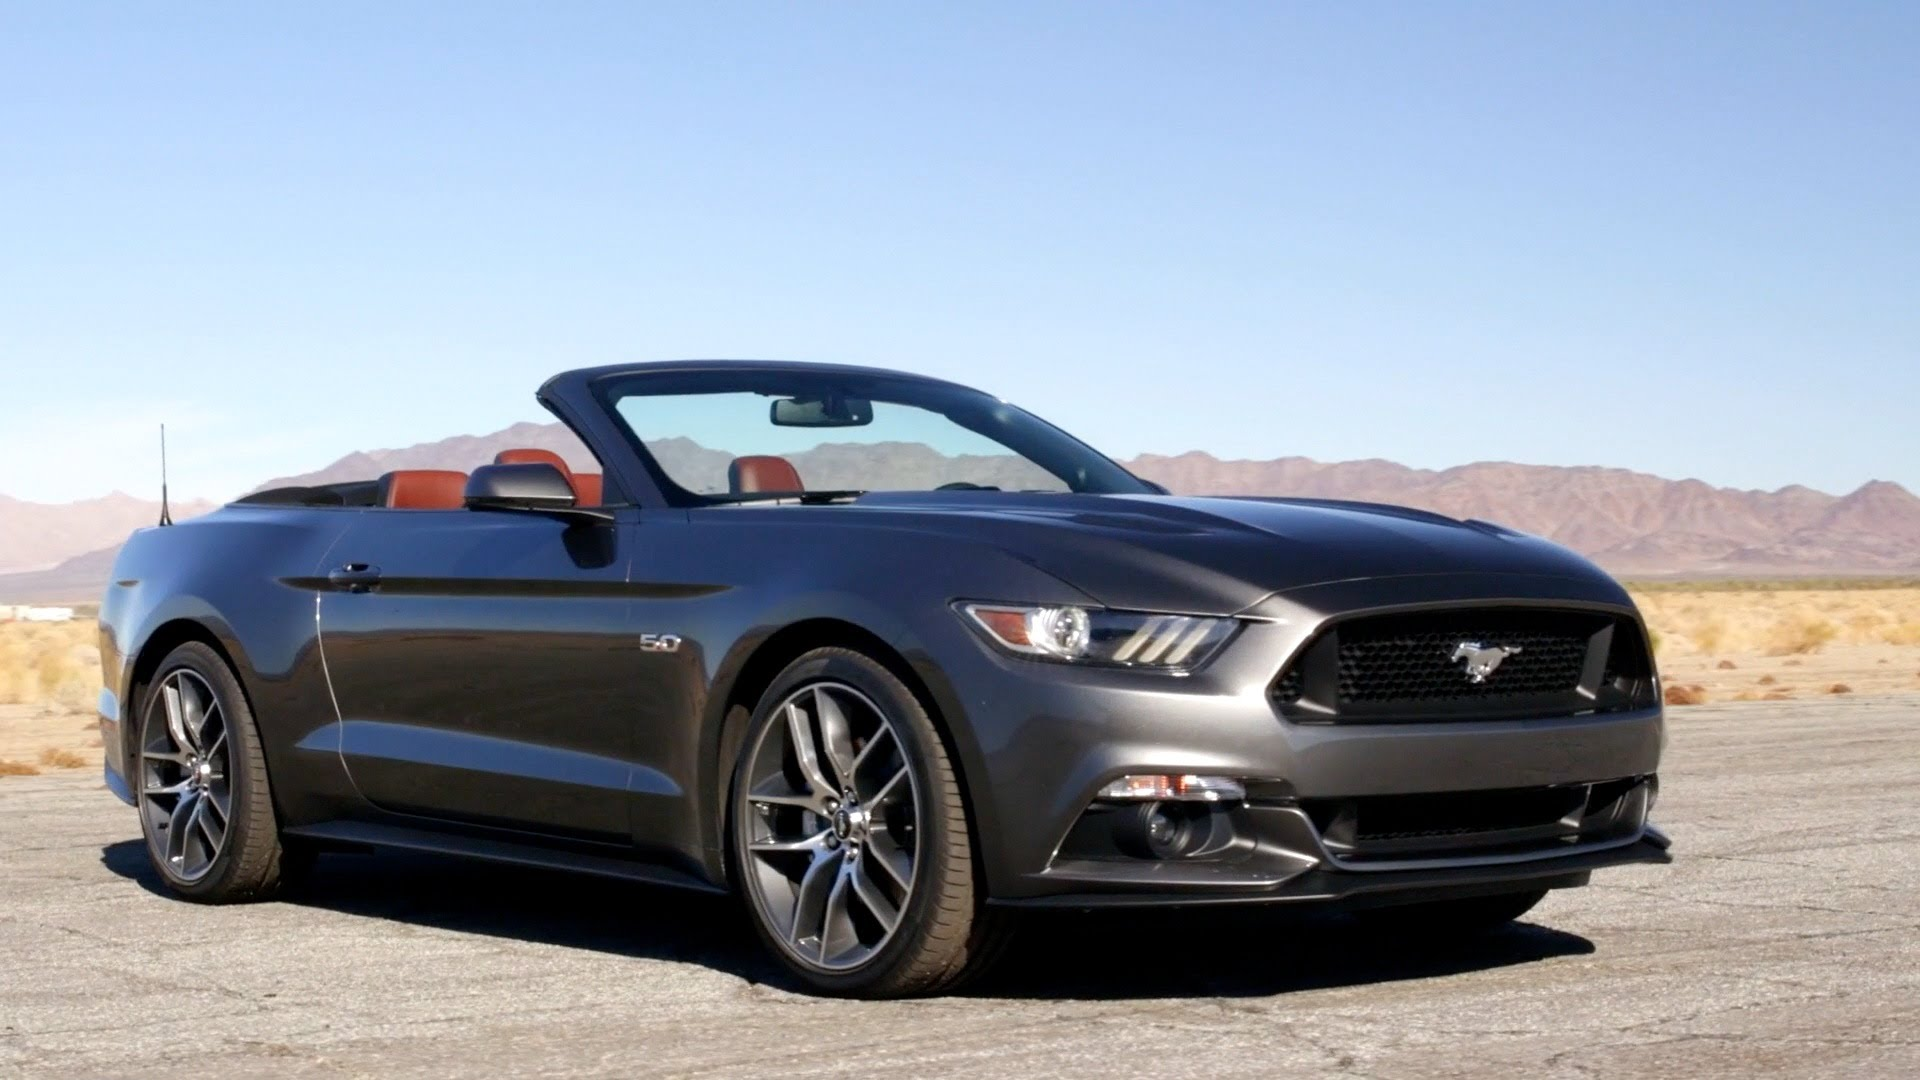 ford mustang cabrio aut luxury cars barcelona rent luxury cars in barcelona. Black Bedroom Furniture Sets. Home Design Ideas